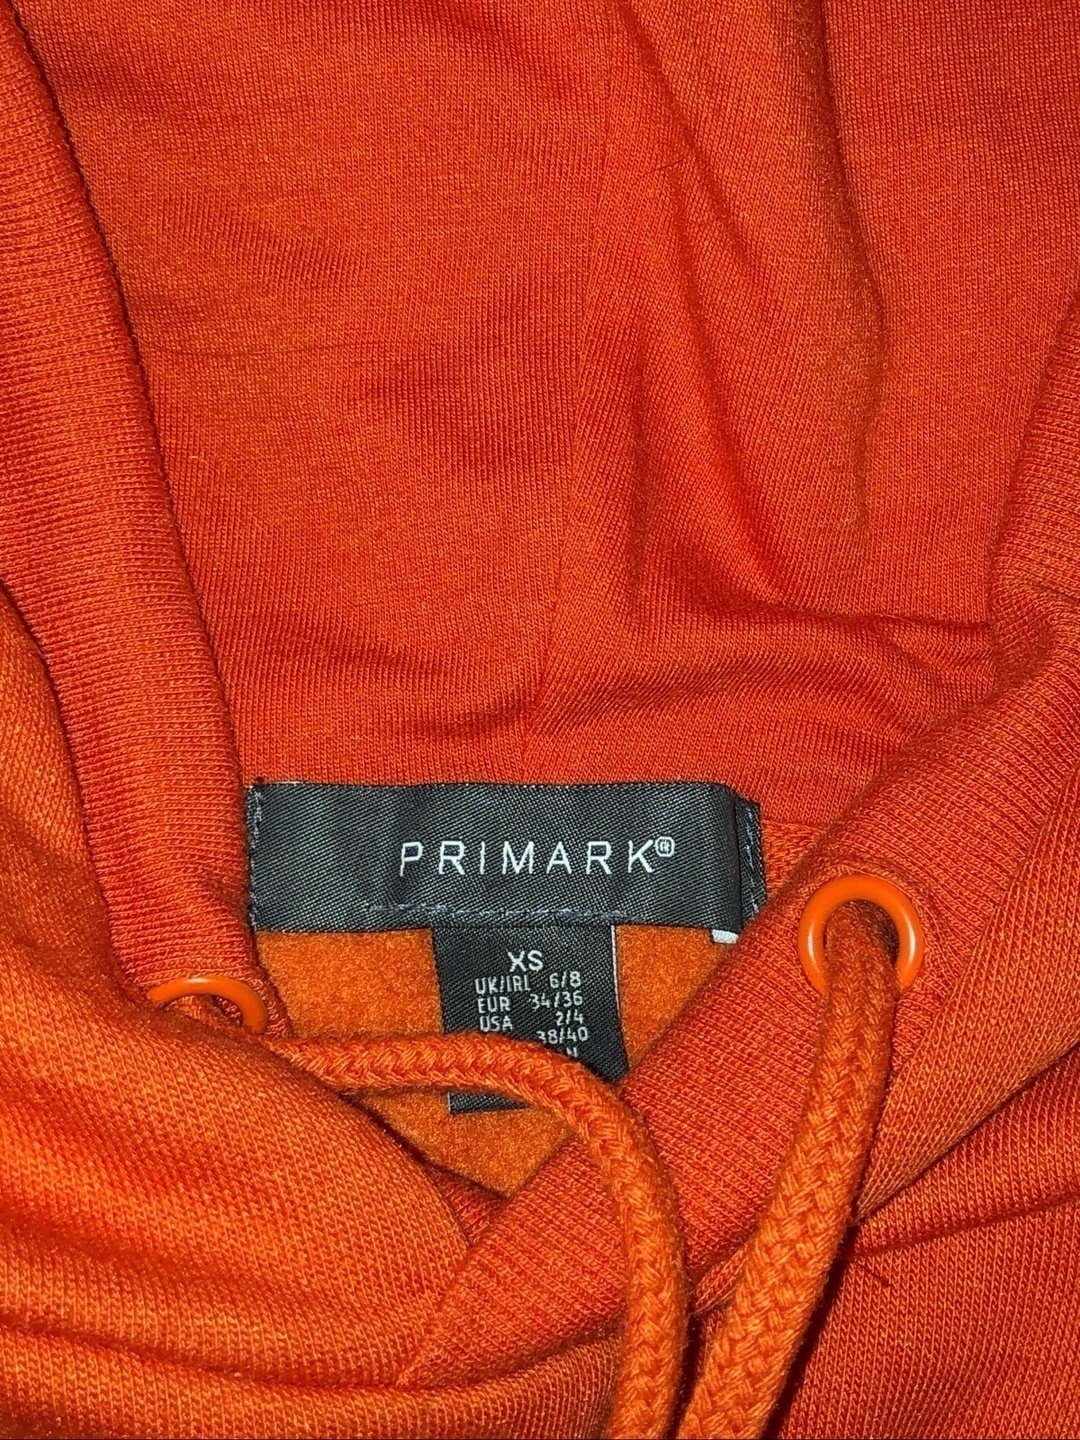 Damen kapuzenpullover & sweatshirts - PRIMARK photo 2